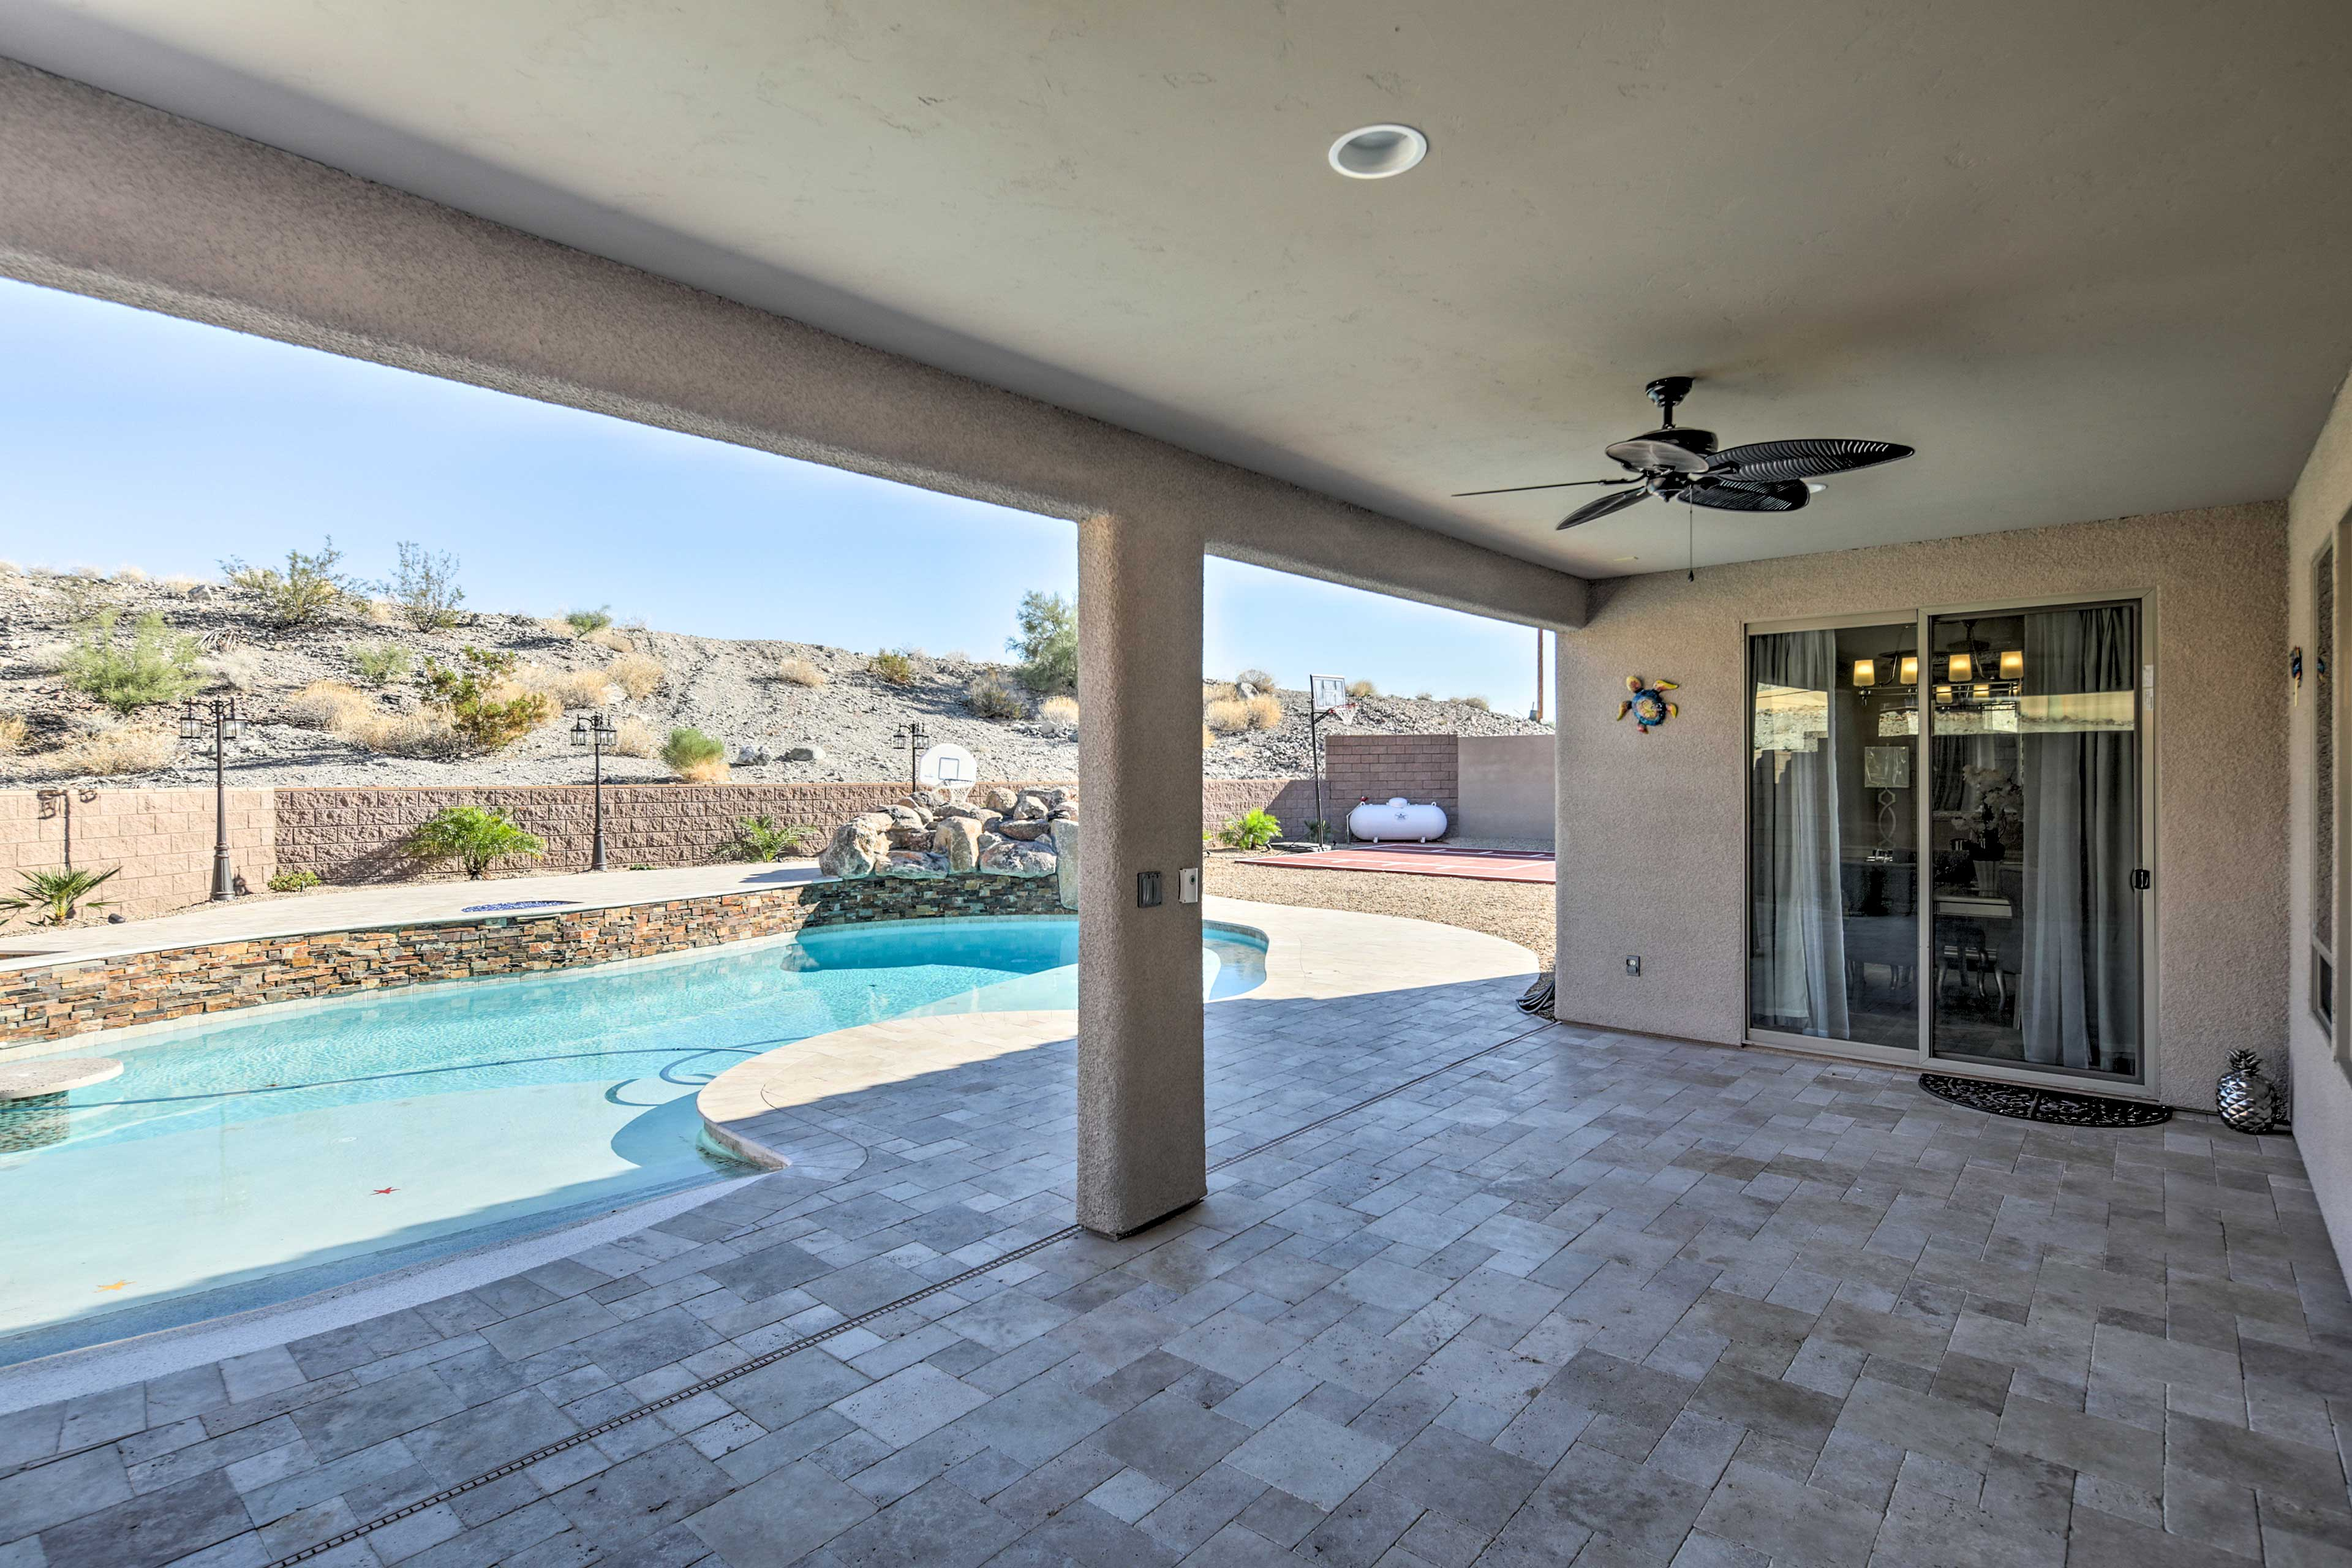 Step outside to your private patio area to breathe in the fresh air!